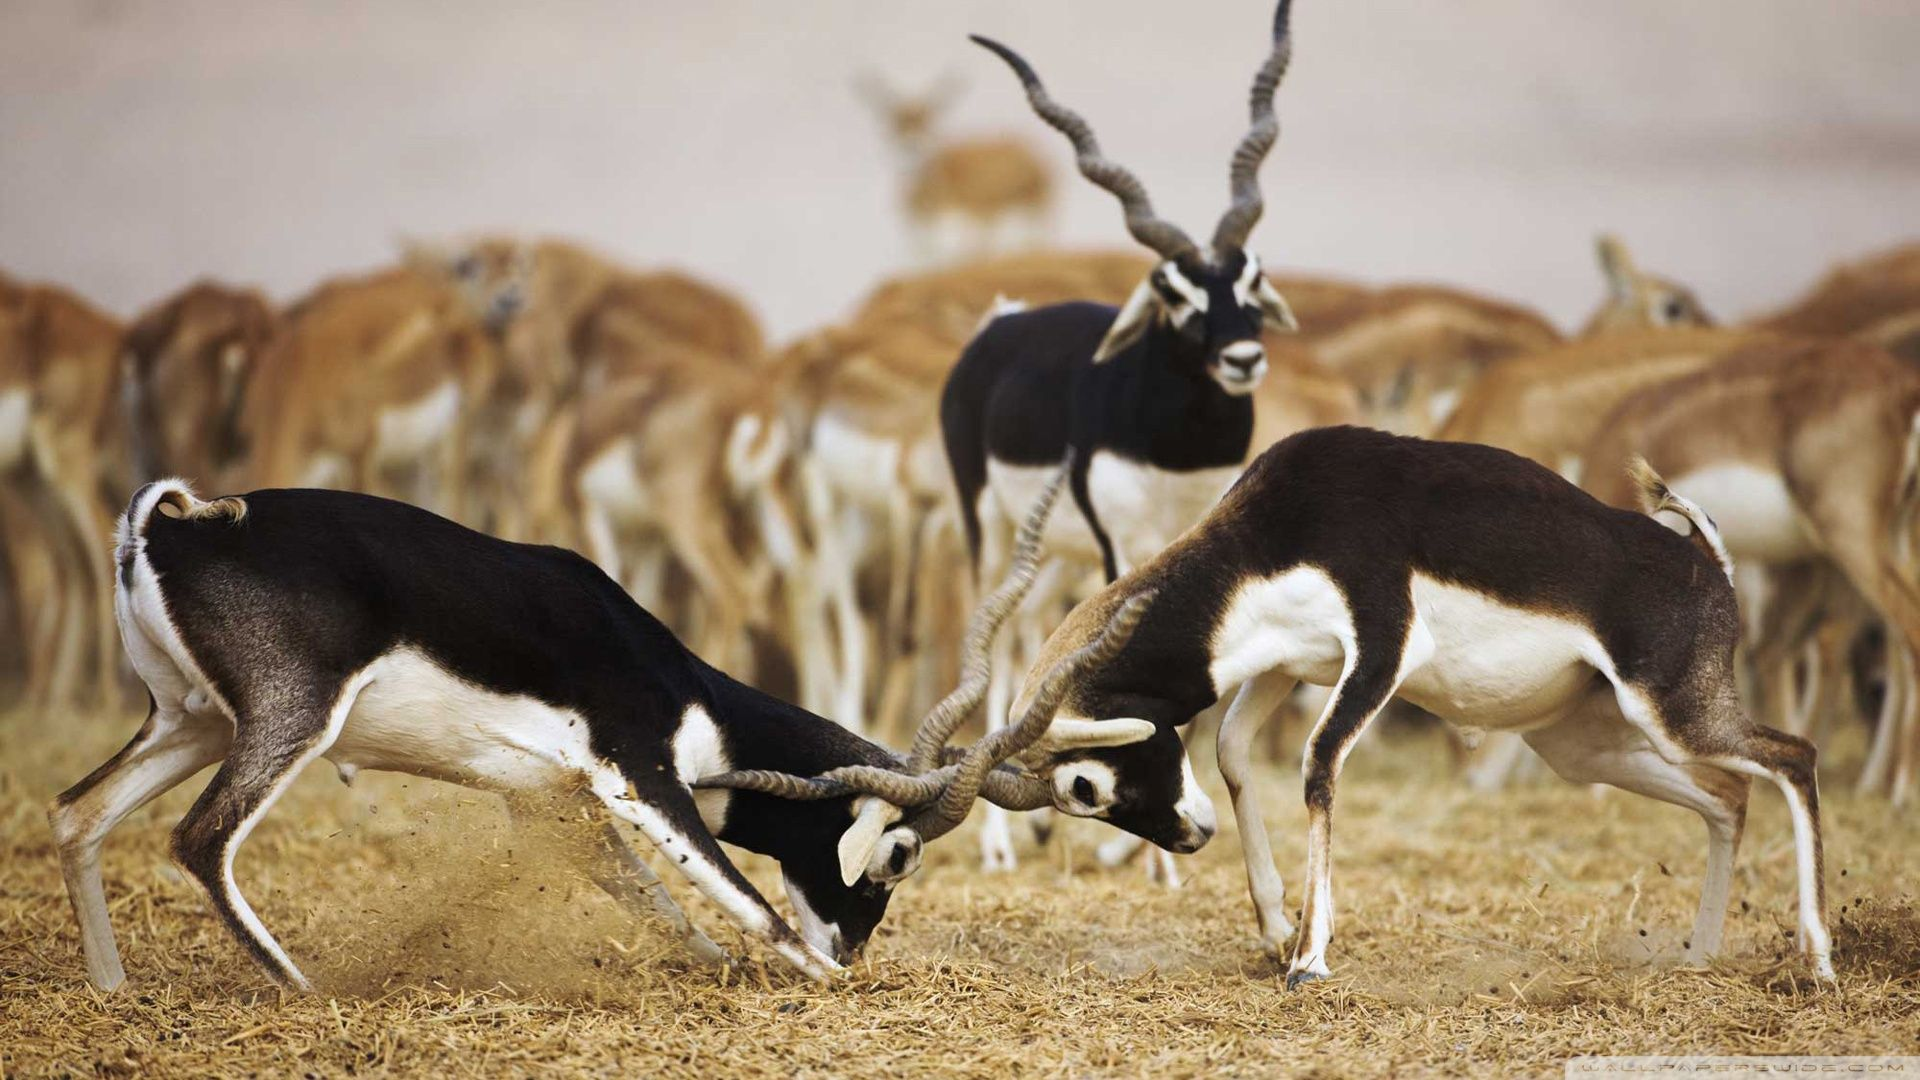 1920x1080 Blackbuck Antelopes Ultra HD Desktop Background Wallpaper for 4K ...